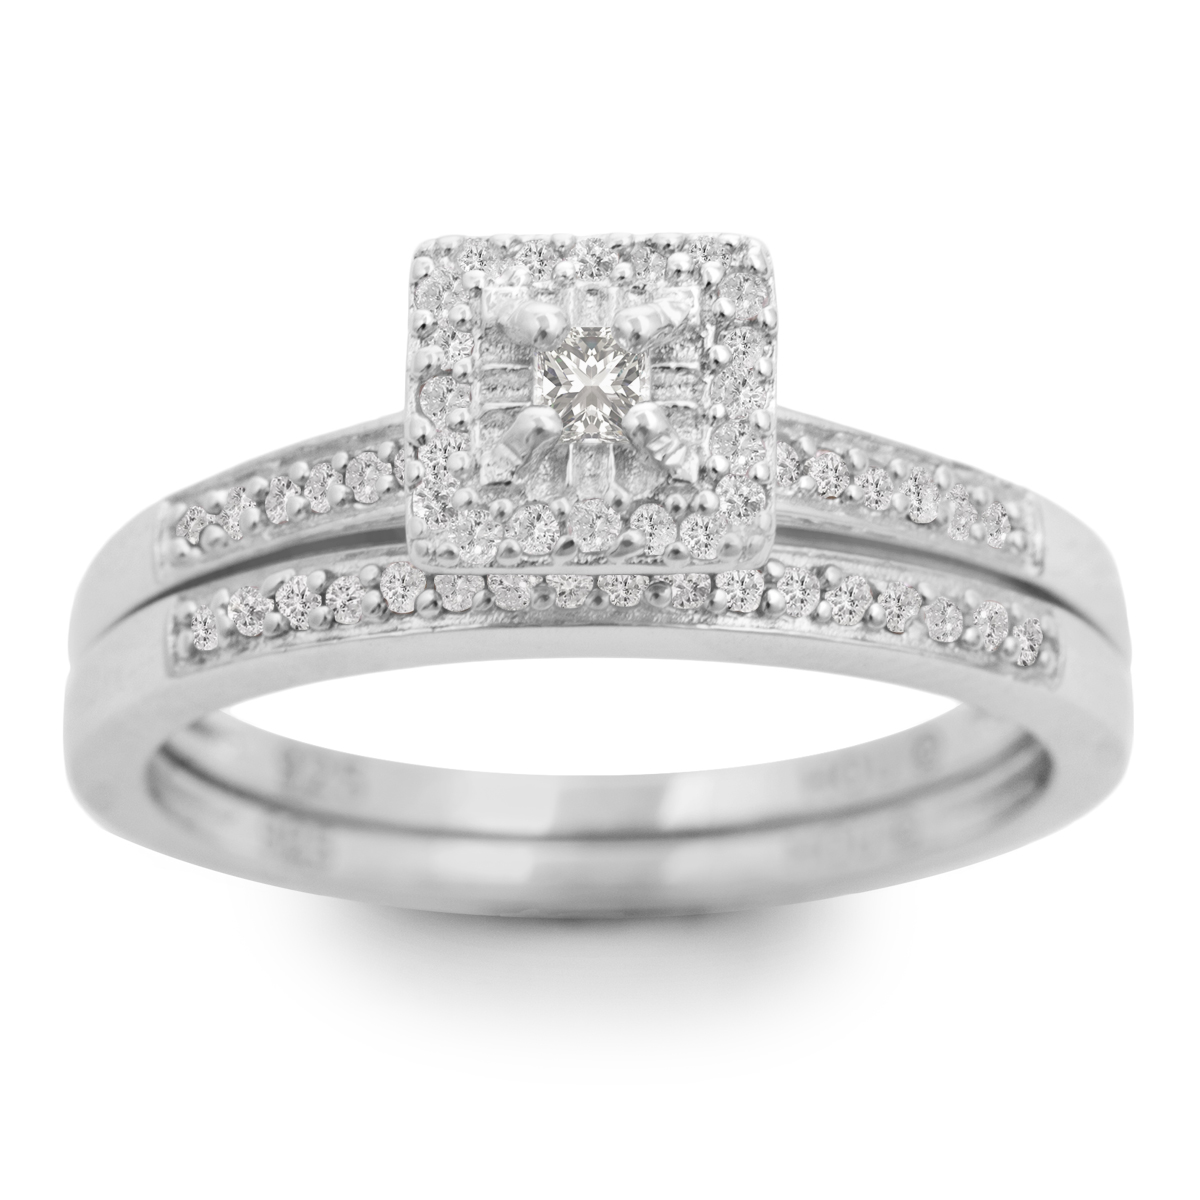 1 4ct Pave Diamond Bridal Set  Sterling Silver